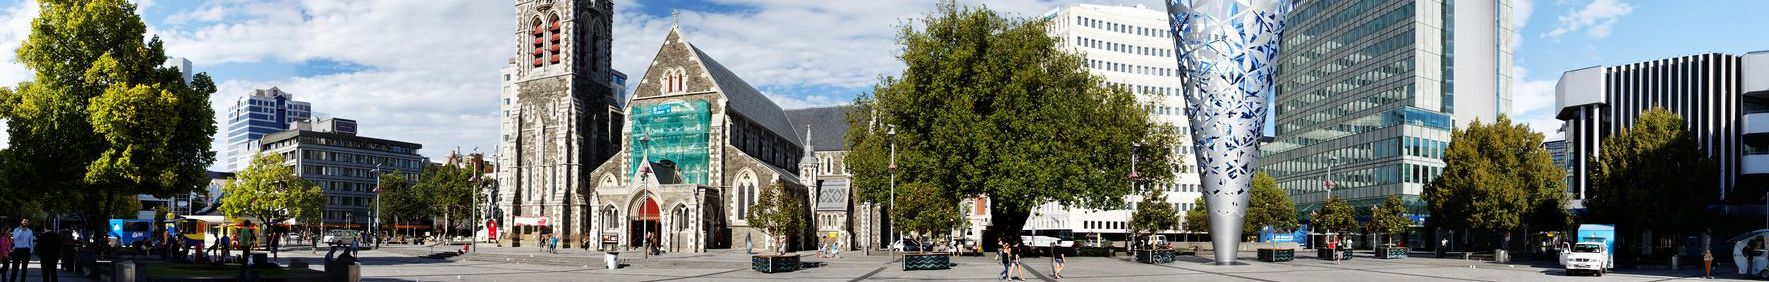 Christchurch_Cathedral_Square